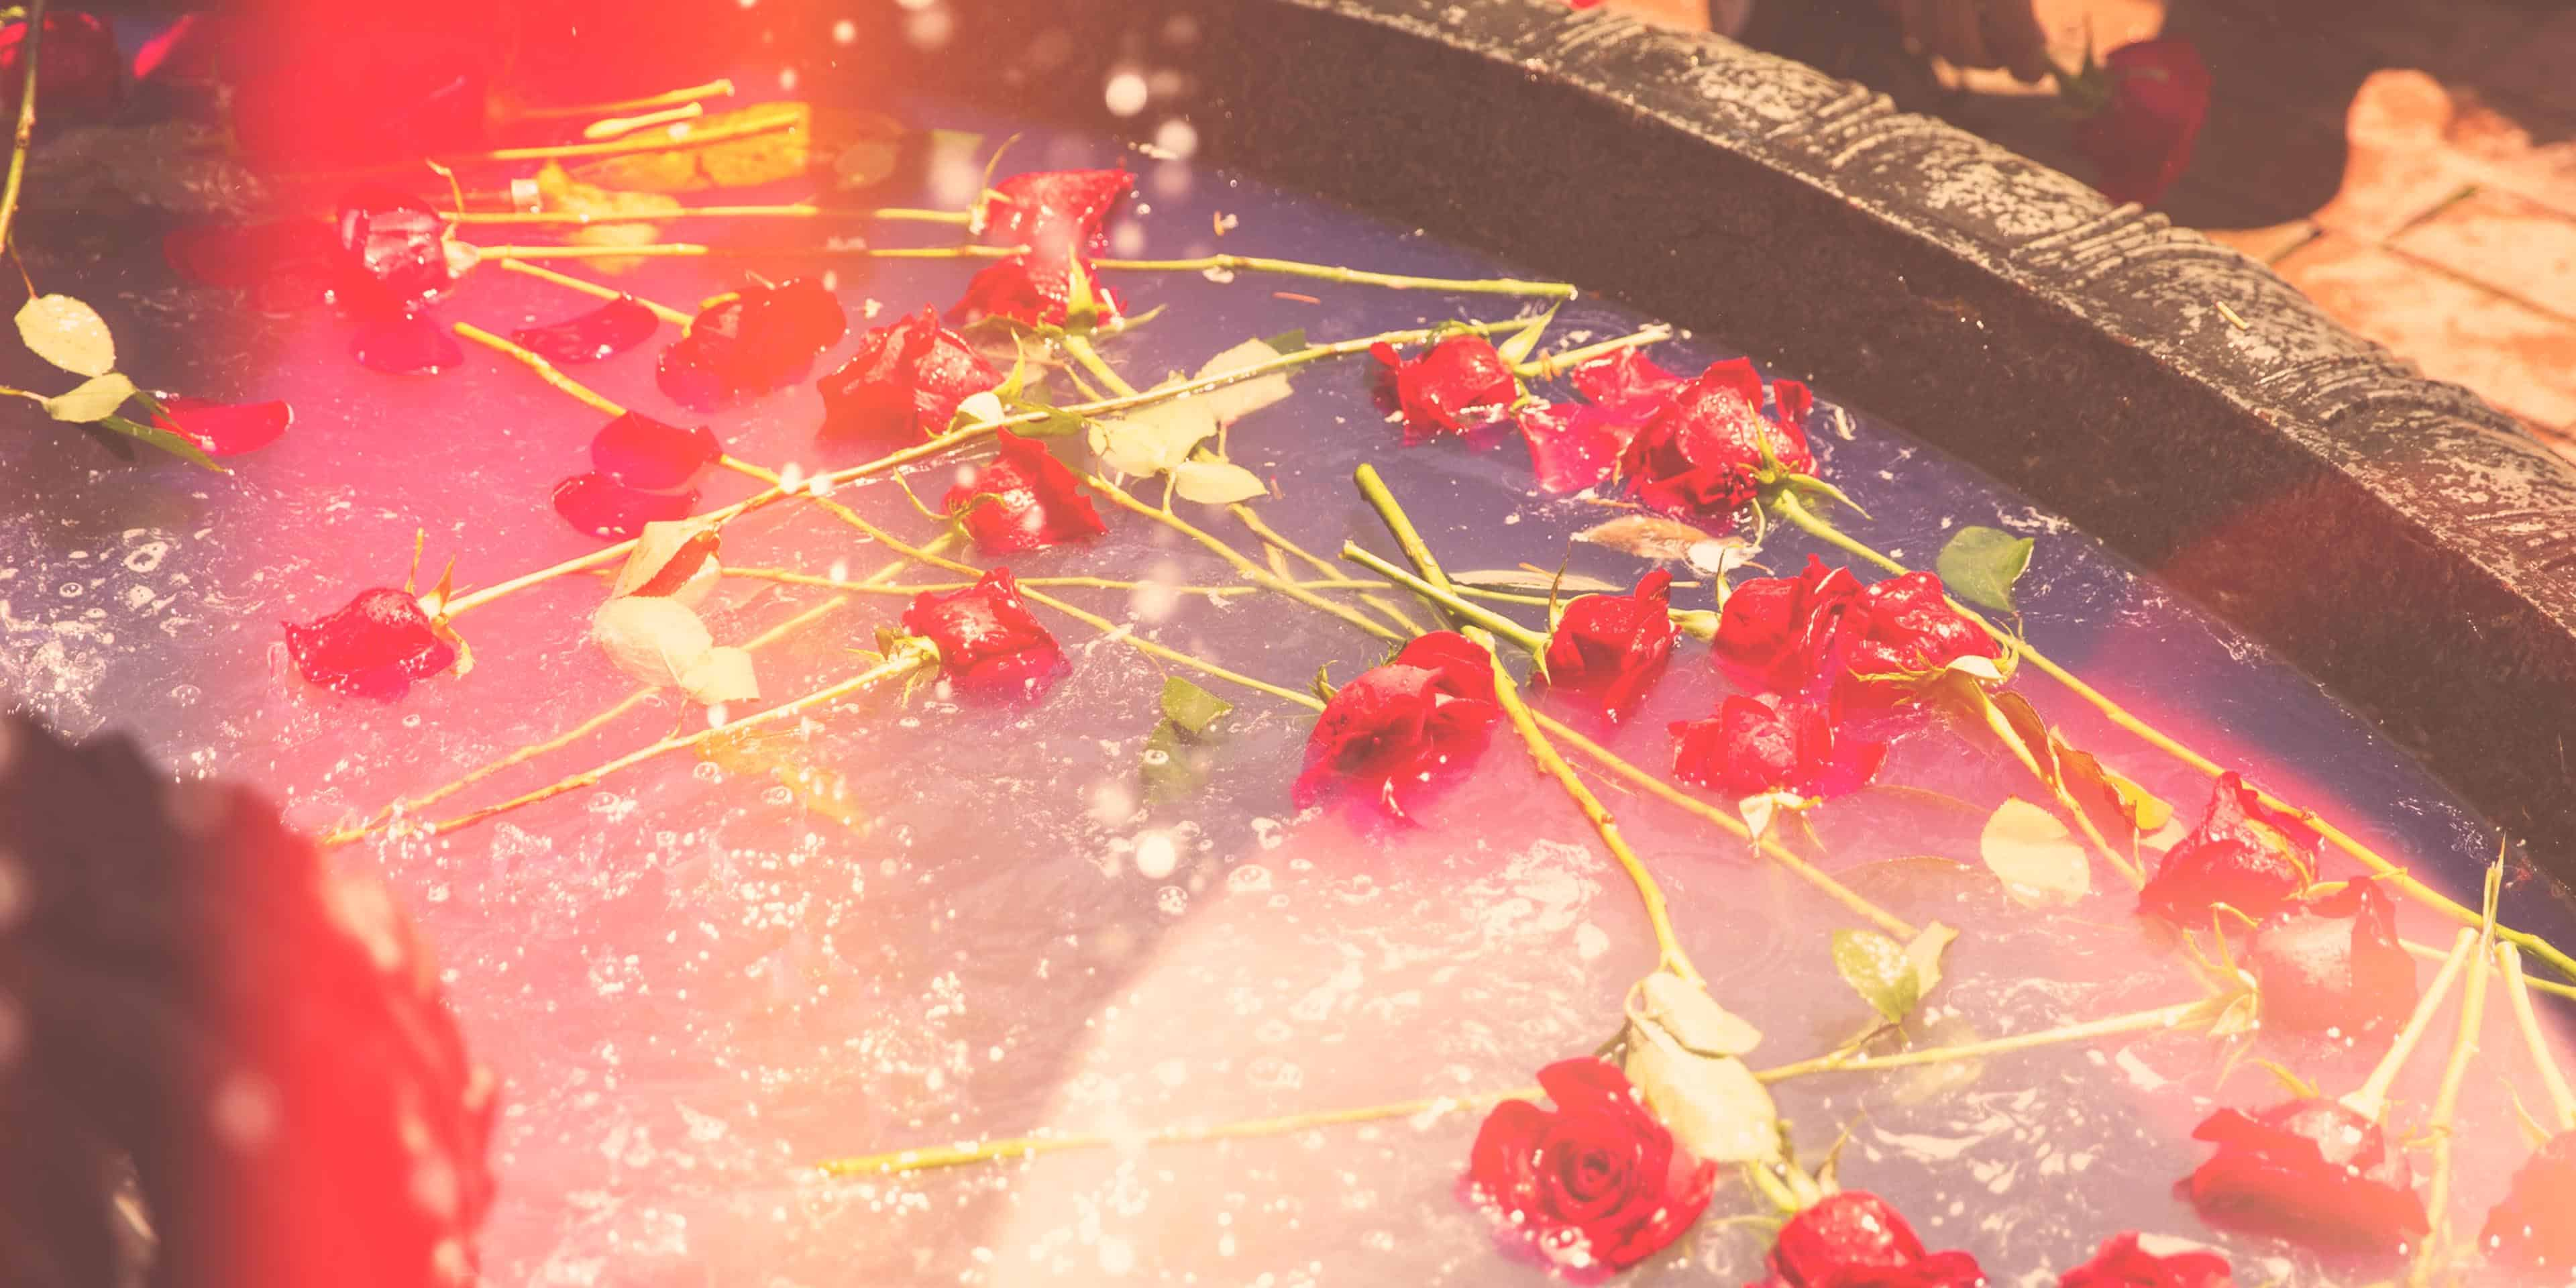 Roses thrown into the fountain on graduation.